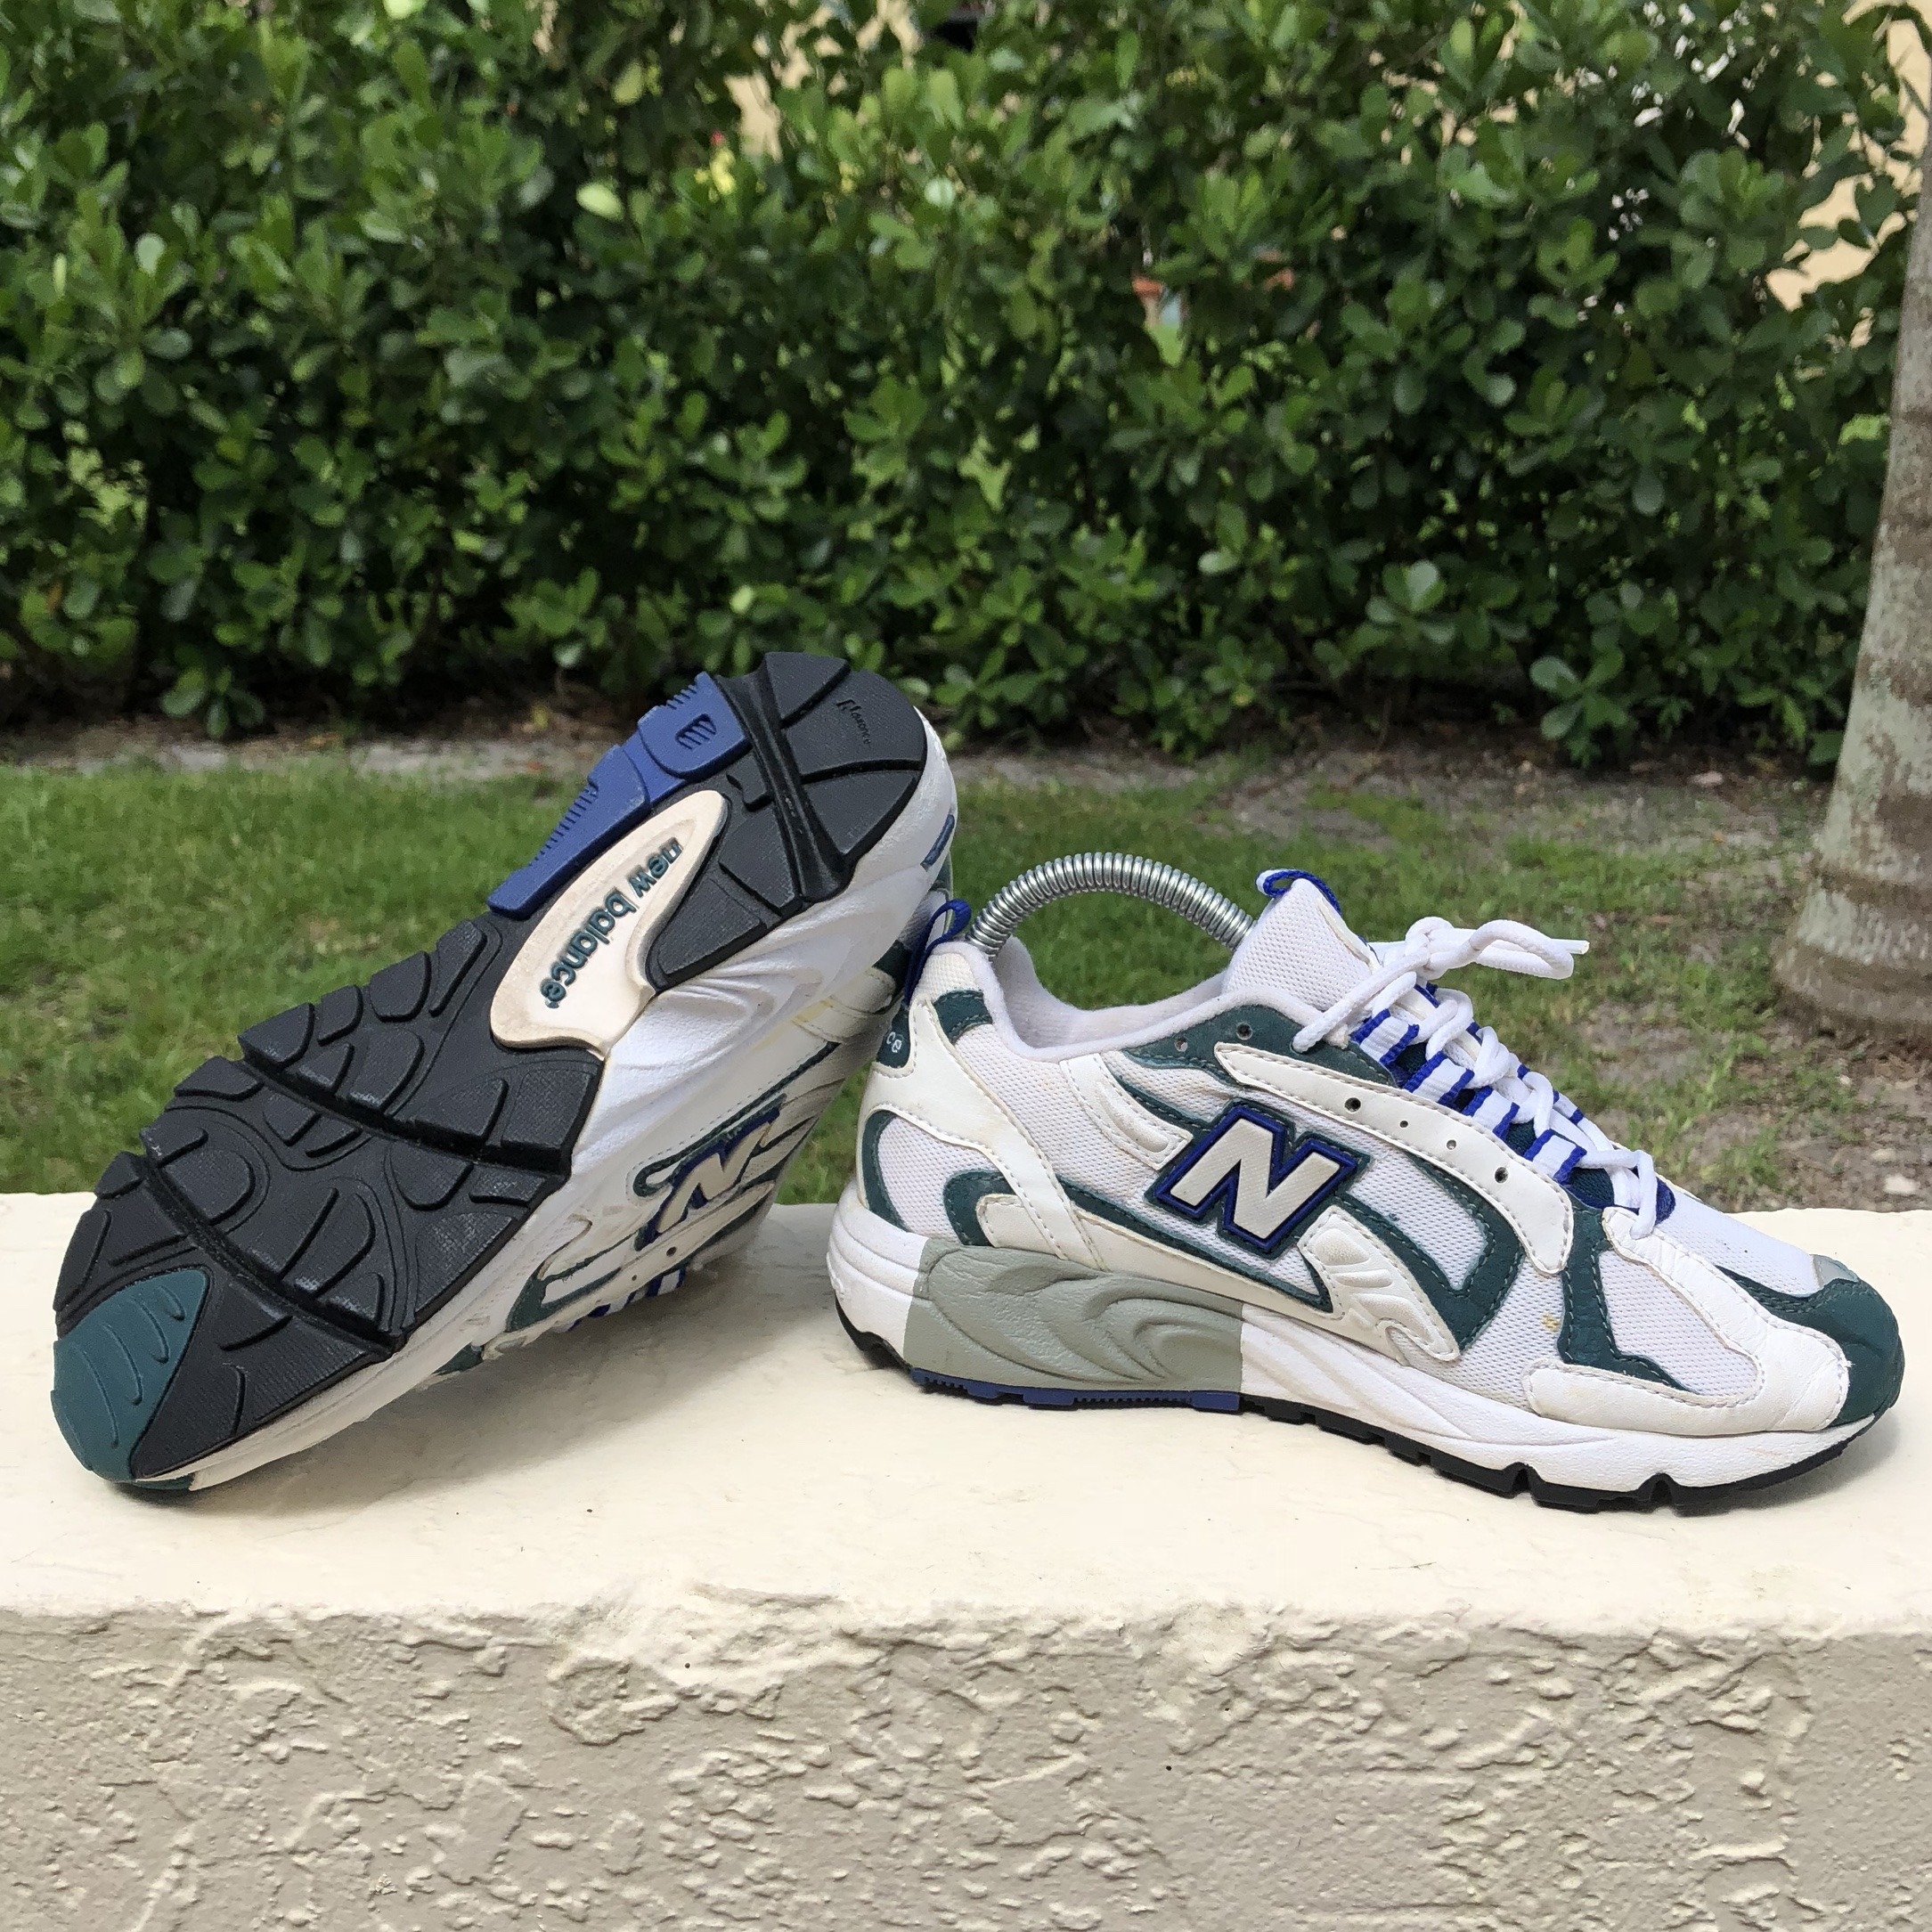 New balance 712 Extremely rare and dope